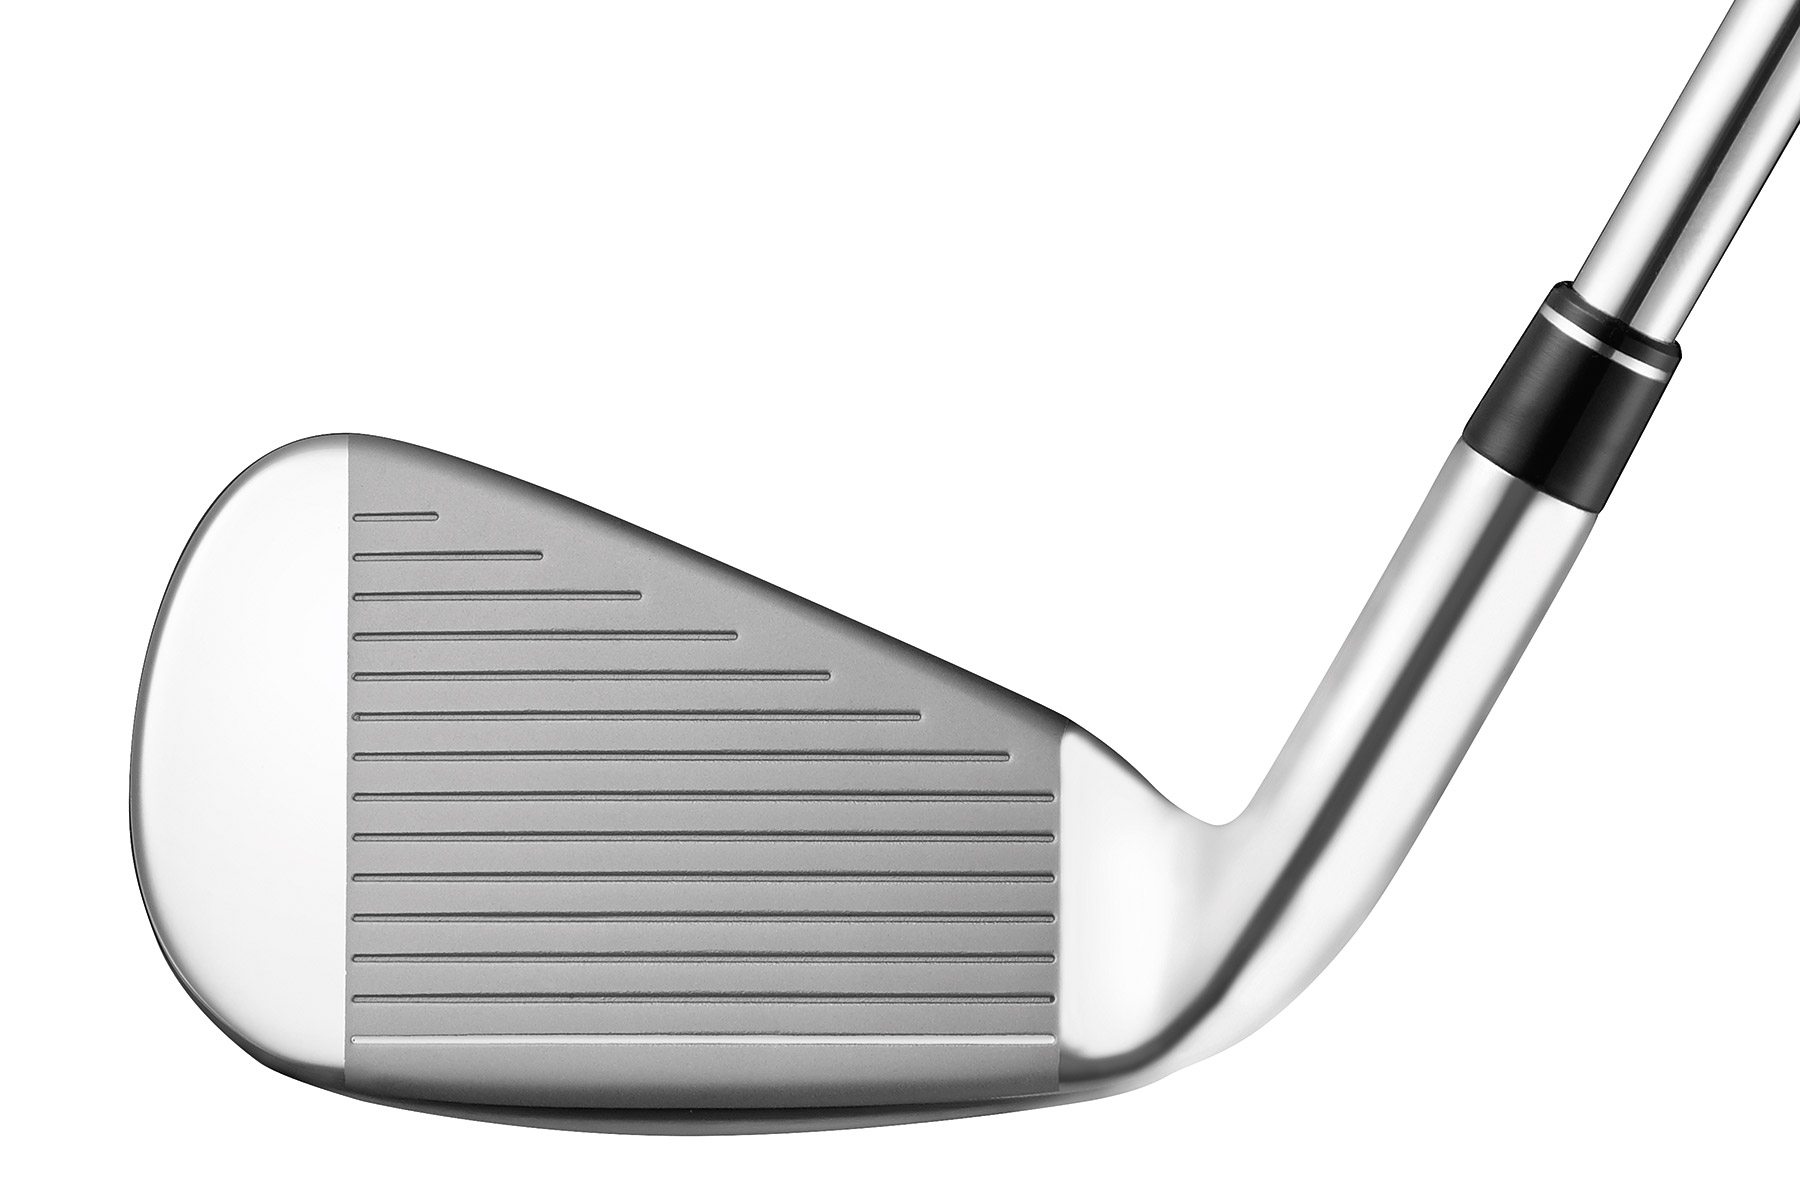 taylormade aeroburner hl irons steel 5 sw from american golf. Black Bedroom Furniture Sets. Home Design Ideas